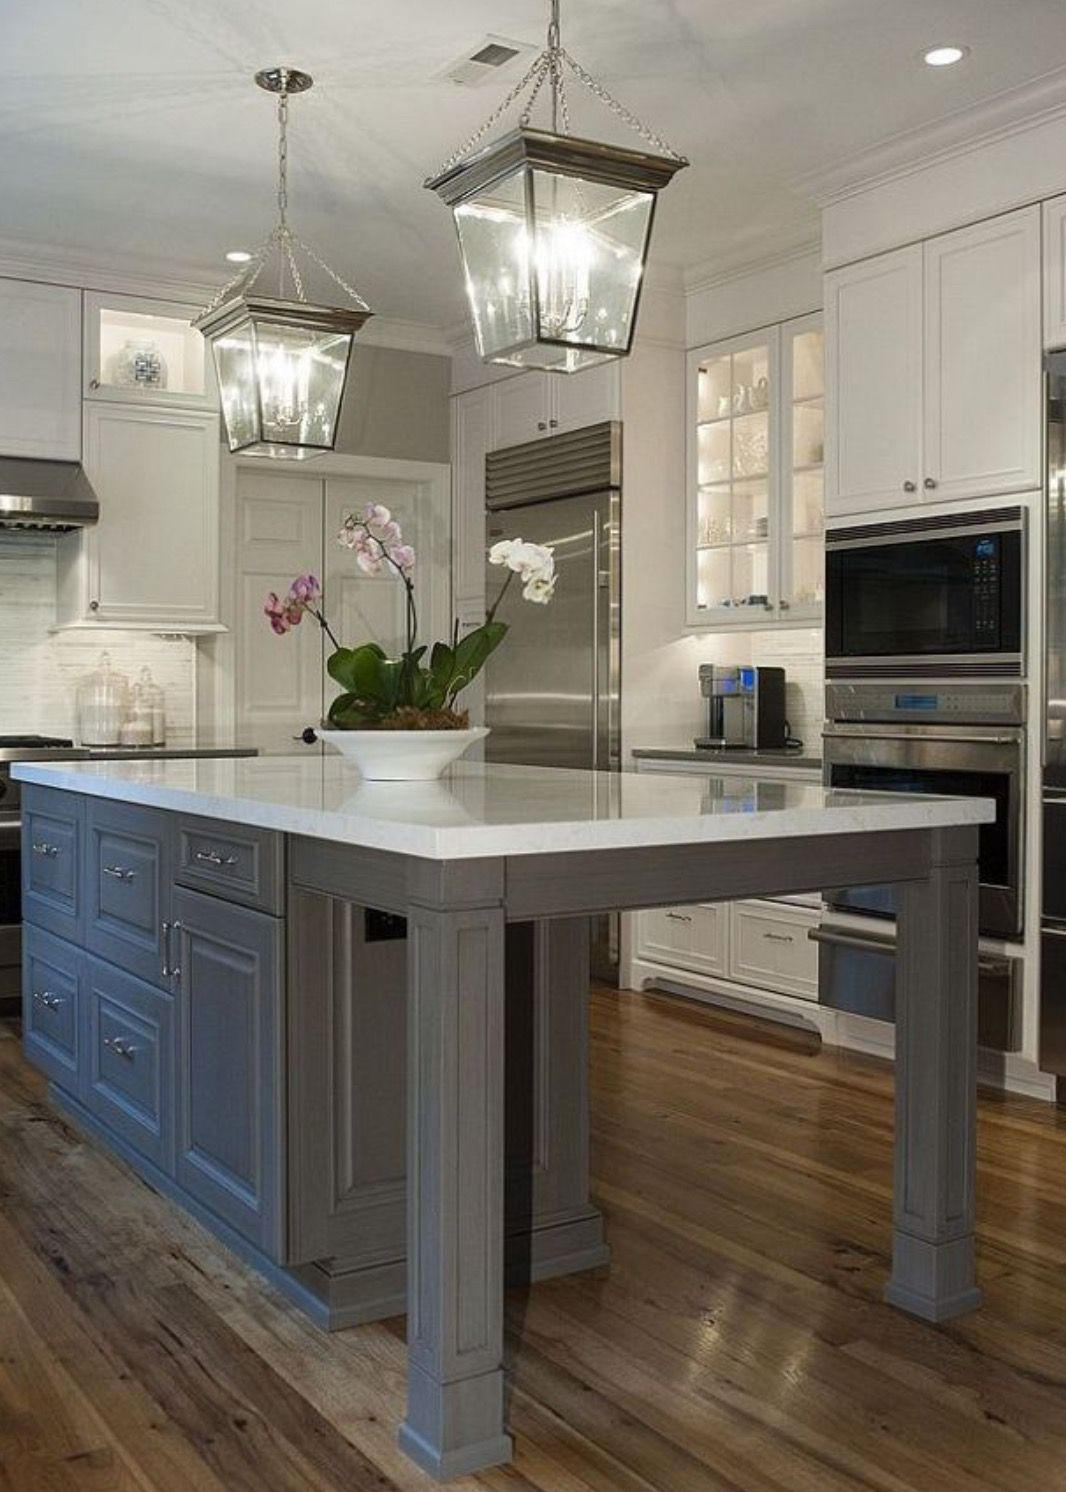 Painting and refinishing existing cabinets can save a lot ...